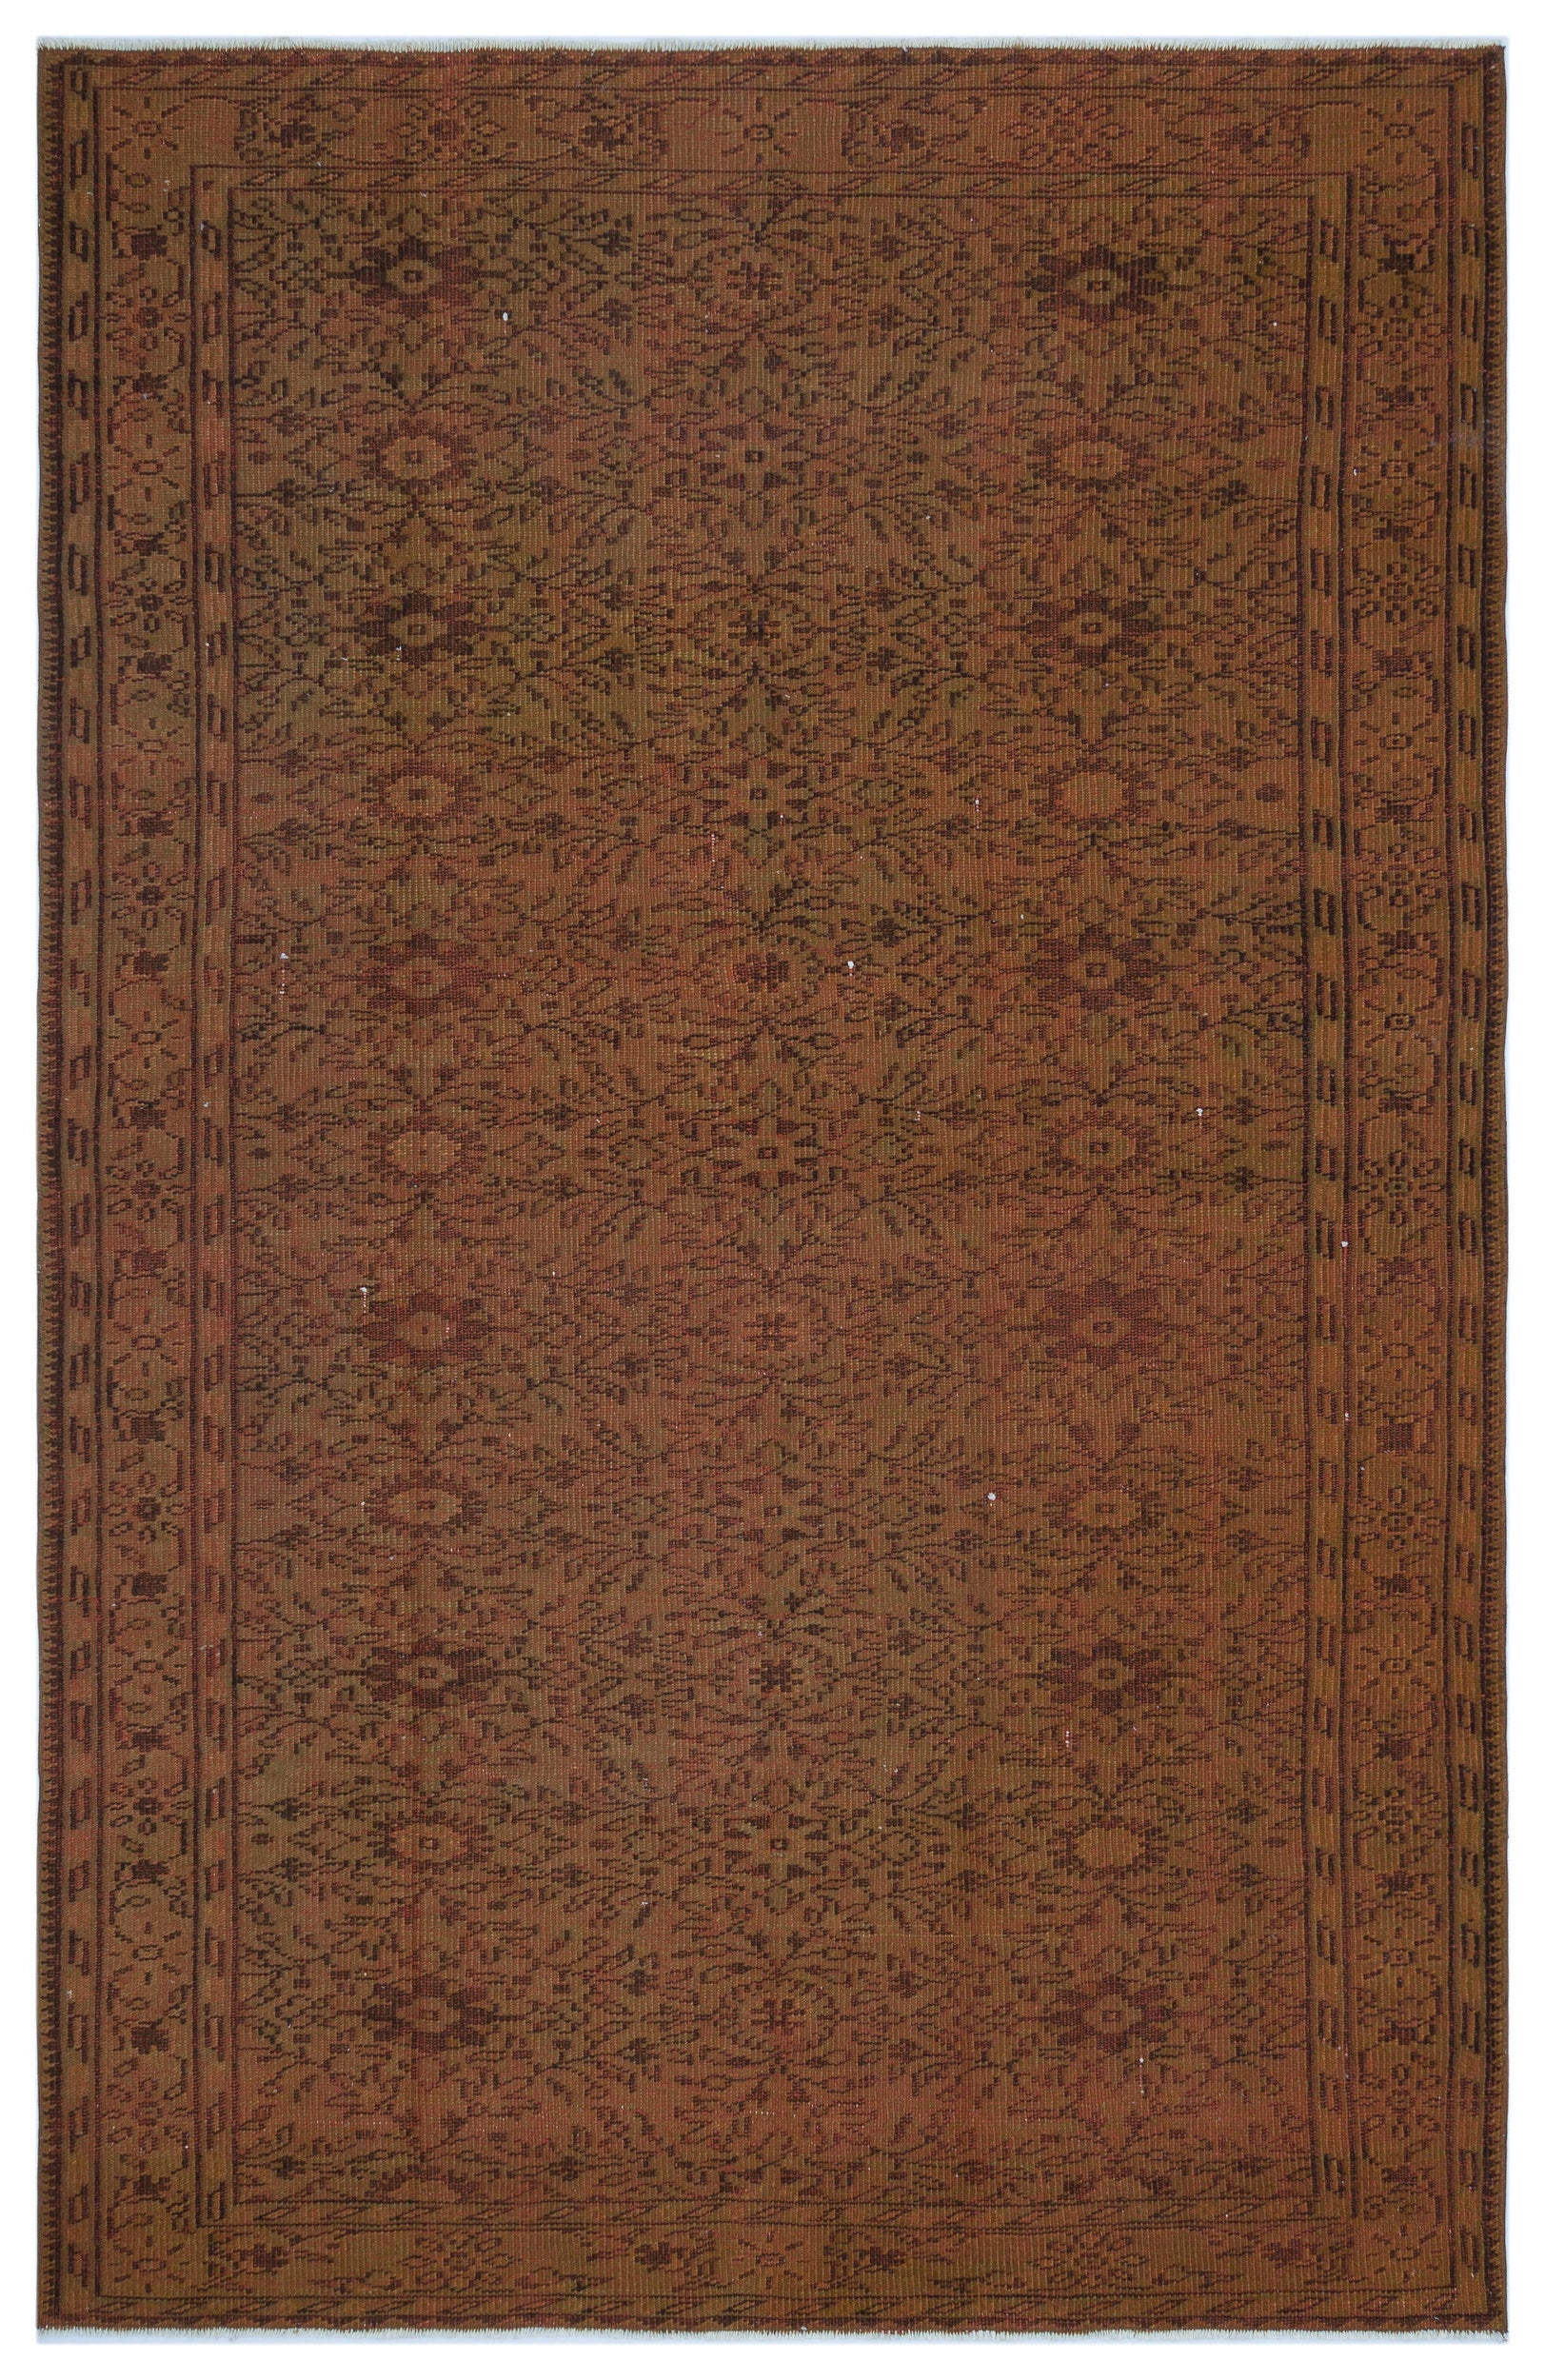 Brown Over Dyed Vintage Rug 5'9'' x 8'9'' ft 174 x 267 cm